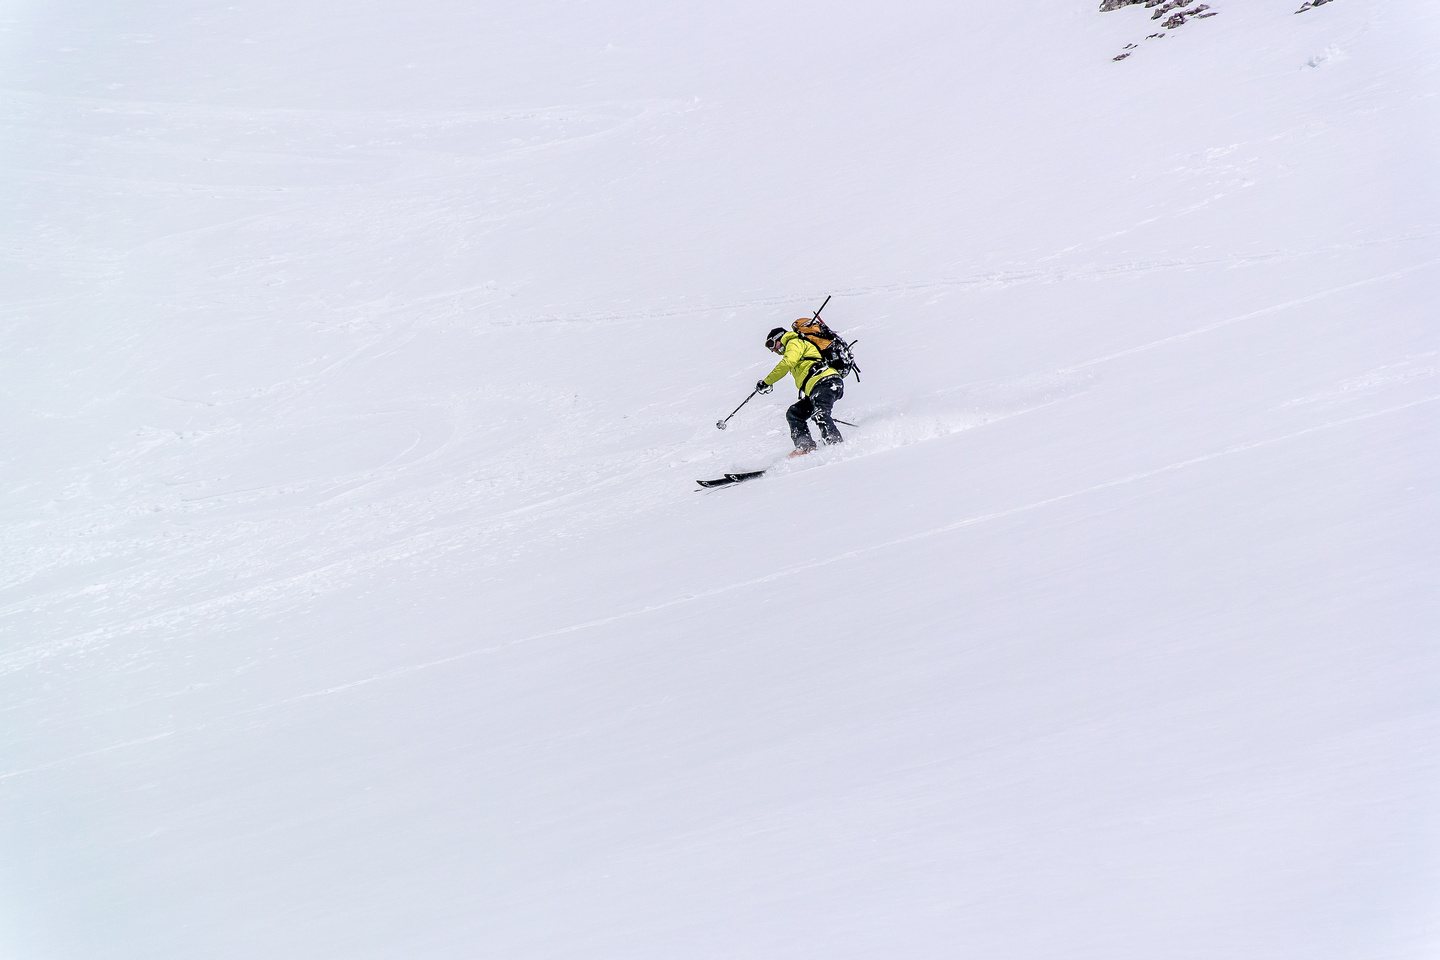 Excellent dust on crust skiing!